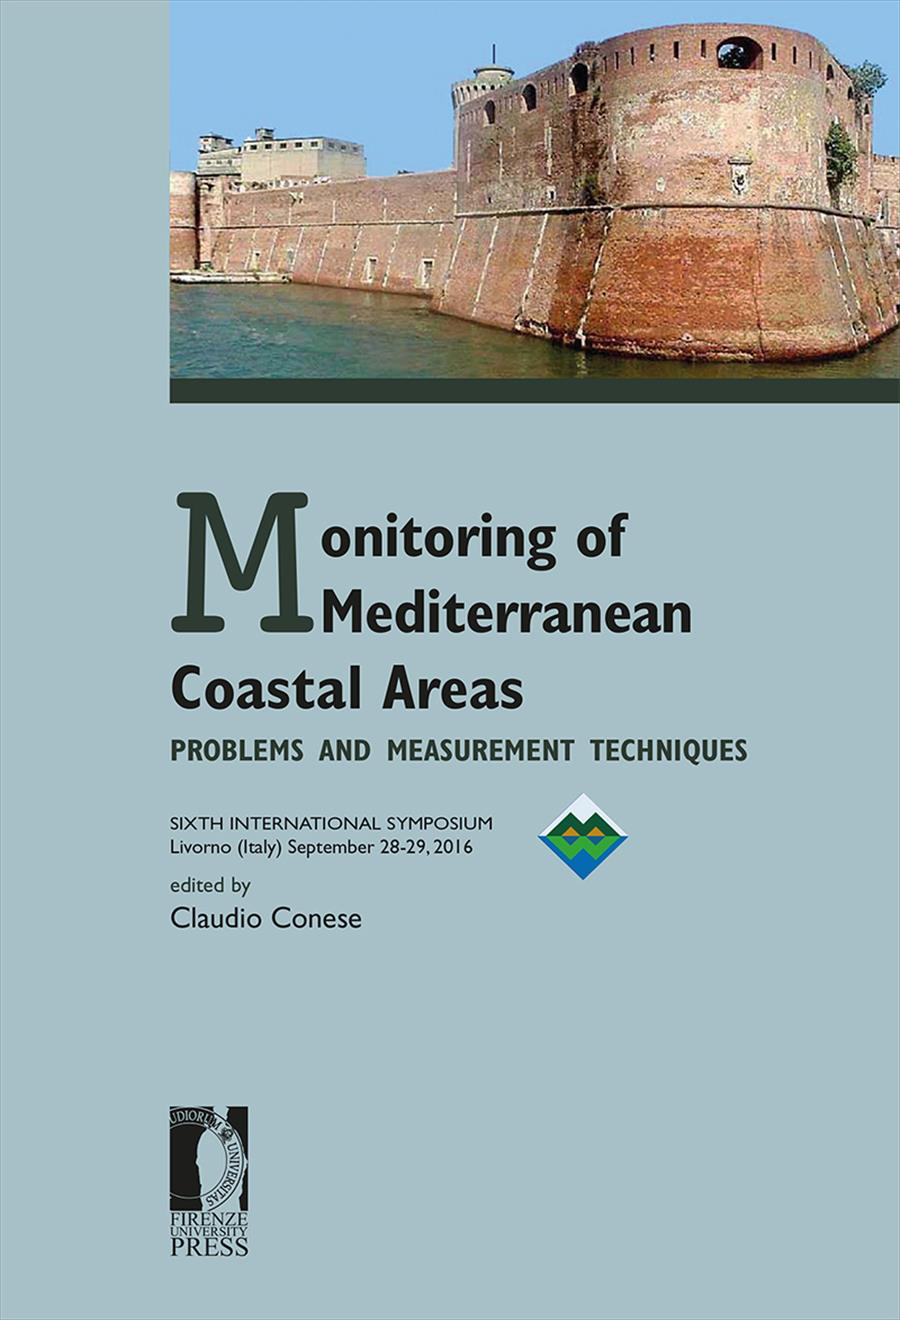 Sixth International Symposium Monitoring of Mediterranean Coastal Areas. Problems and Measurement Techniques